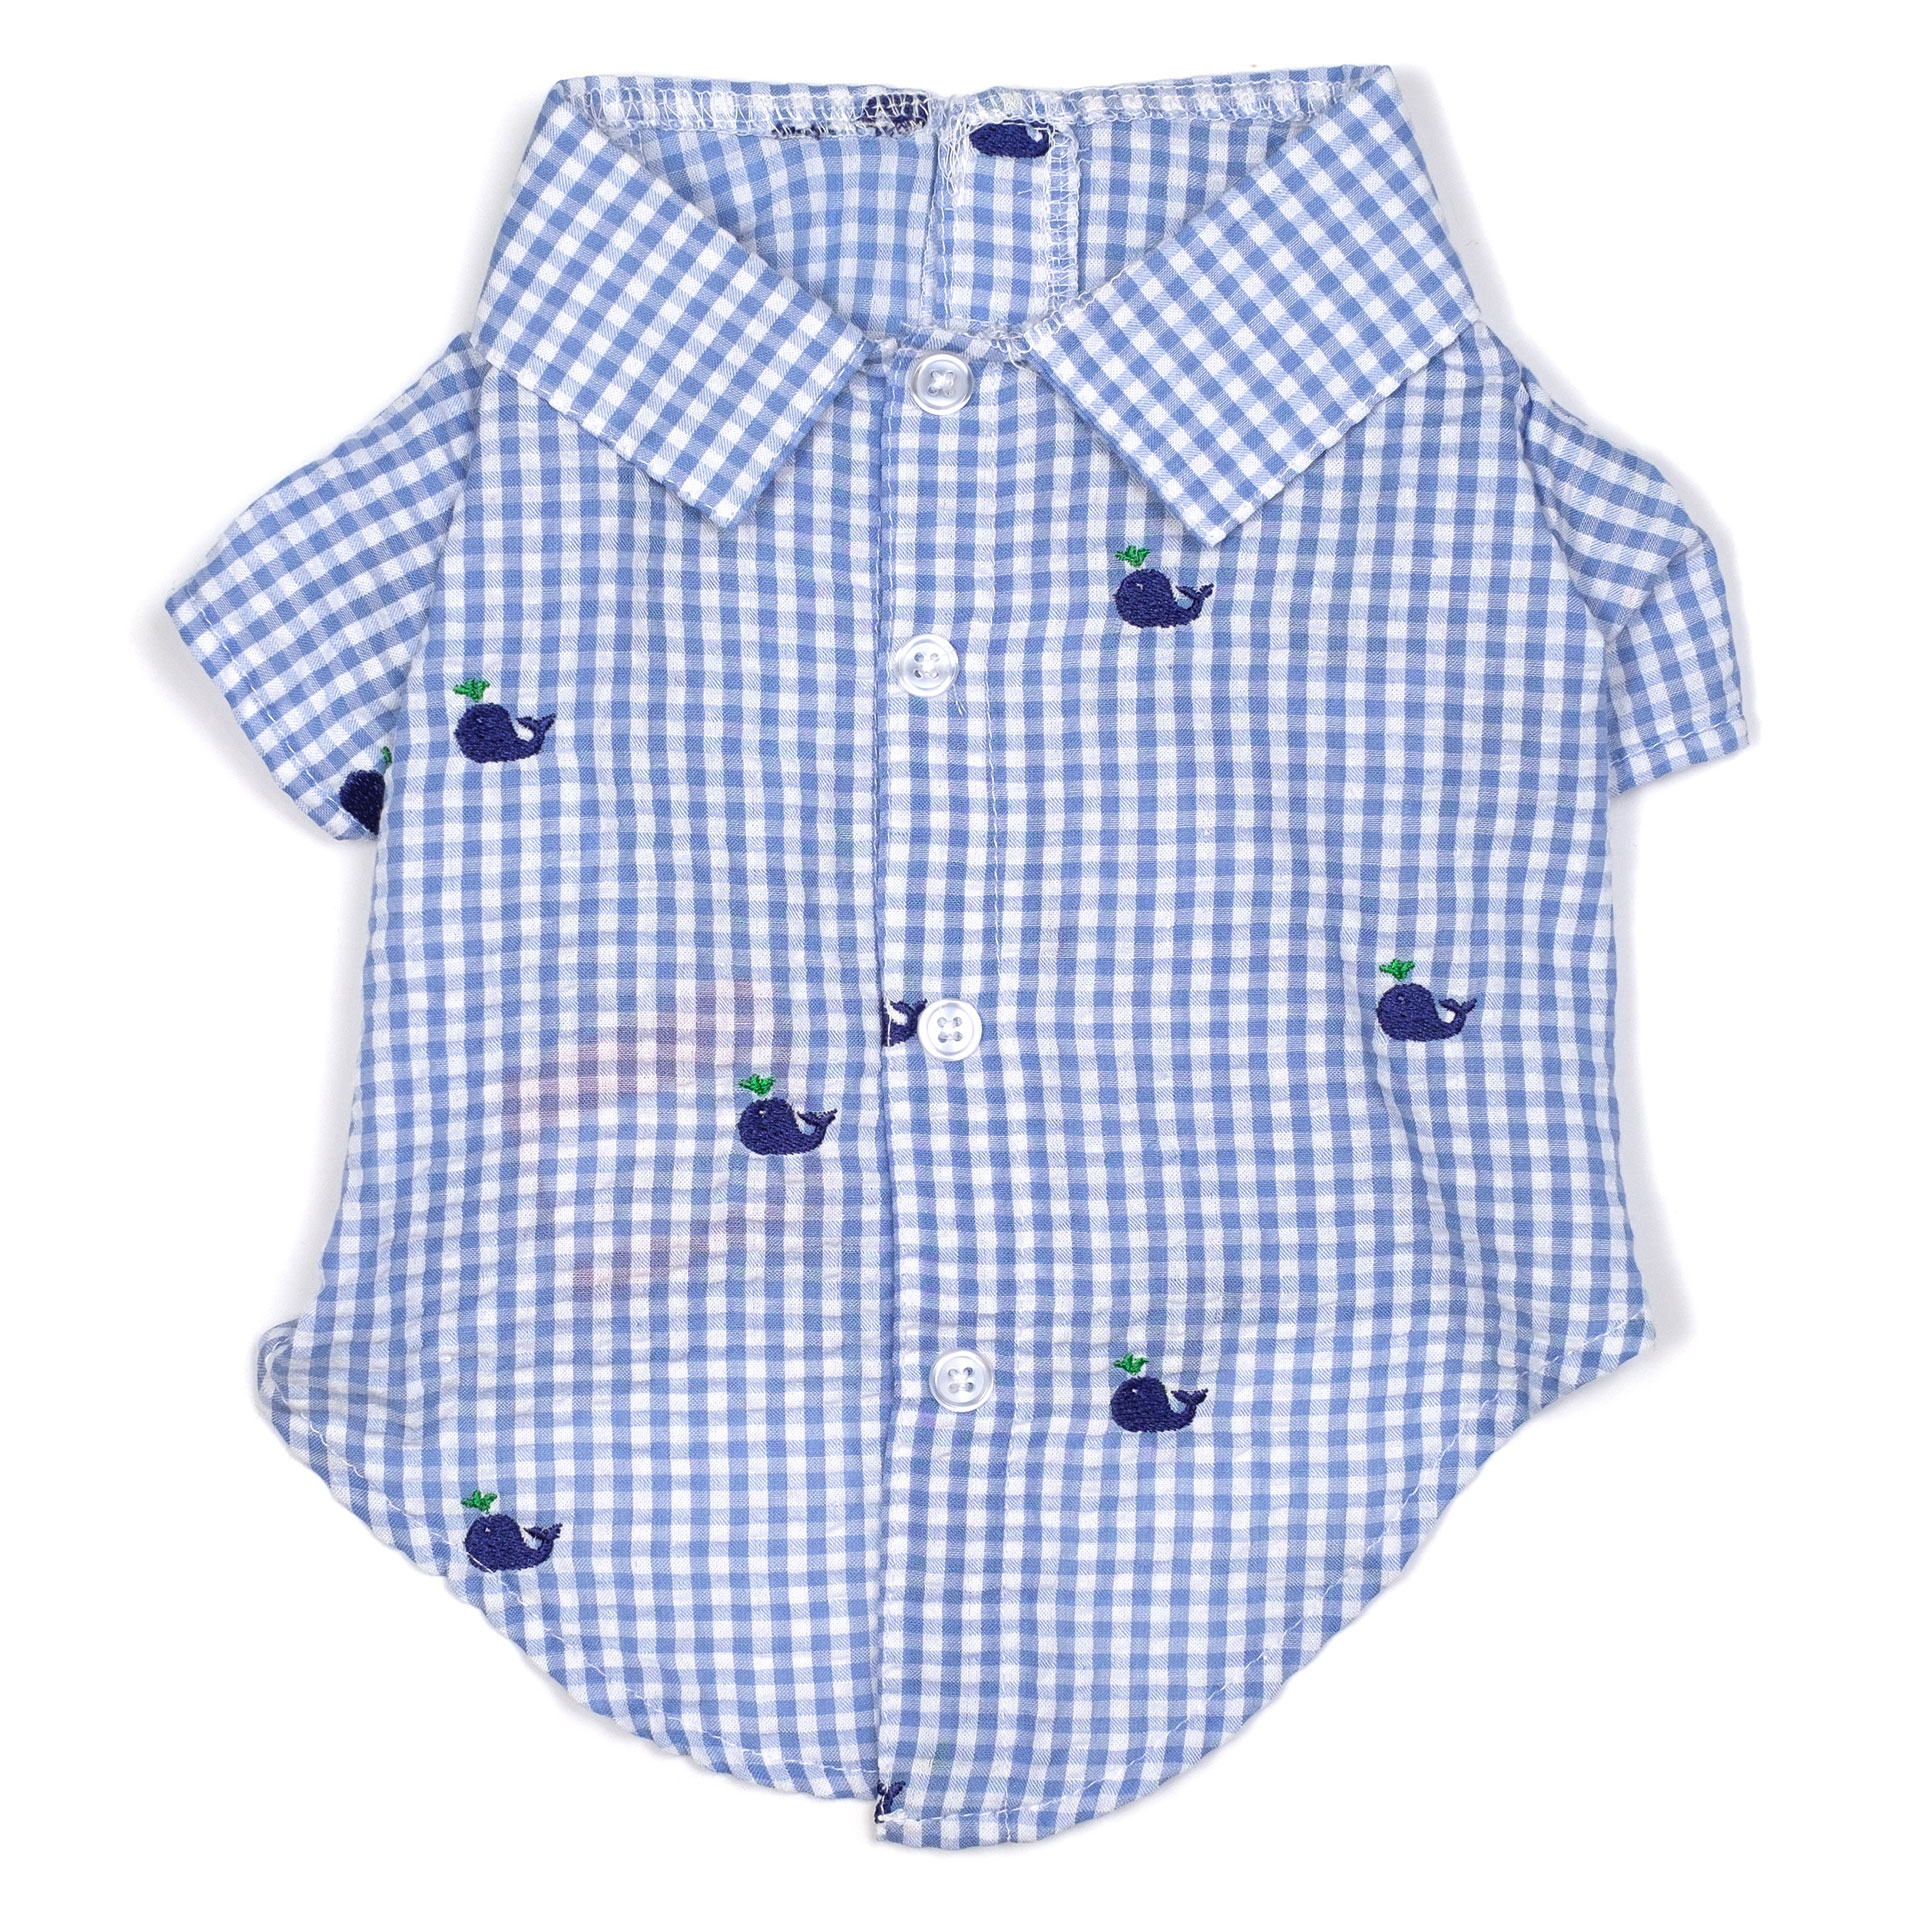 d69d4064af8 Summer Boy Shirt: Gingham-Whales - Bark and Swagger